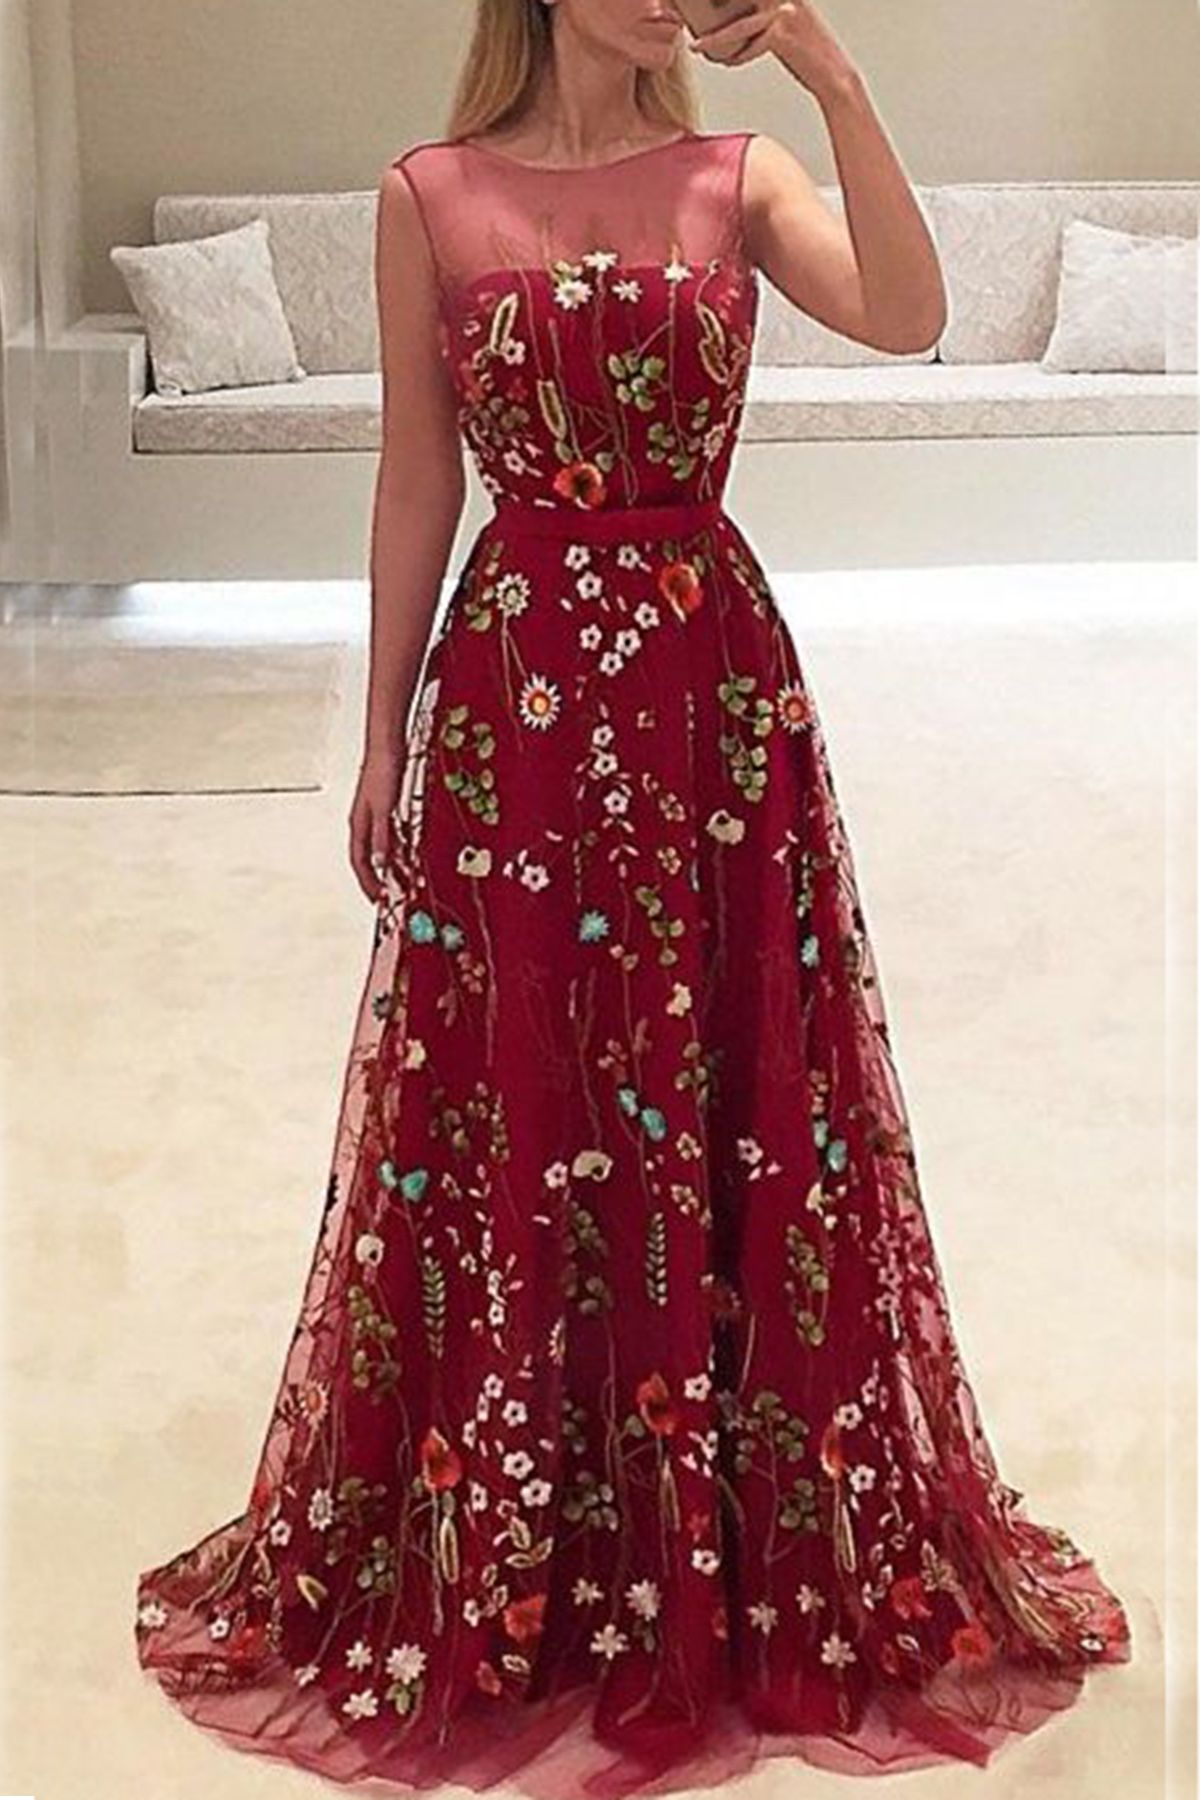 Elegant burgundy lace long aline senior halter prom dress from